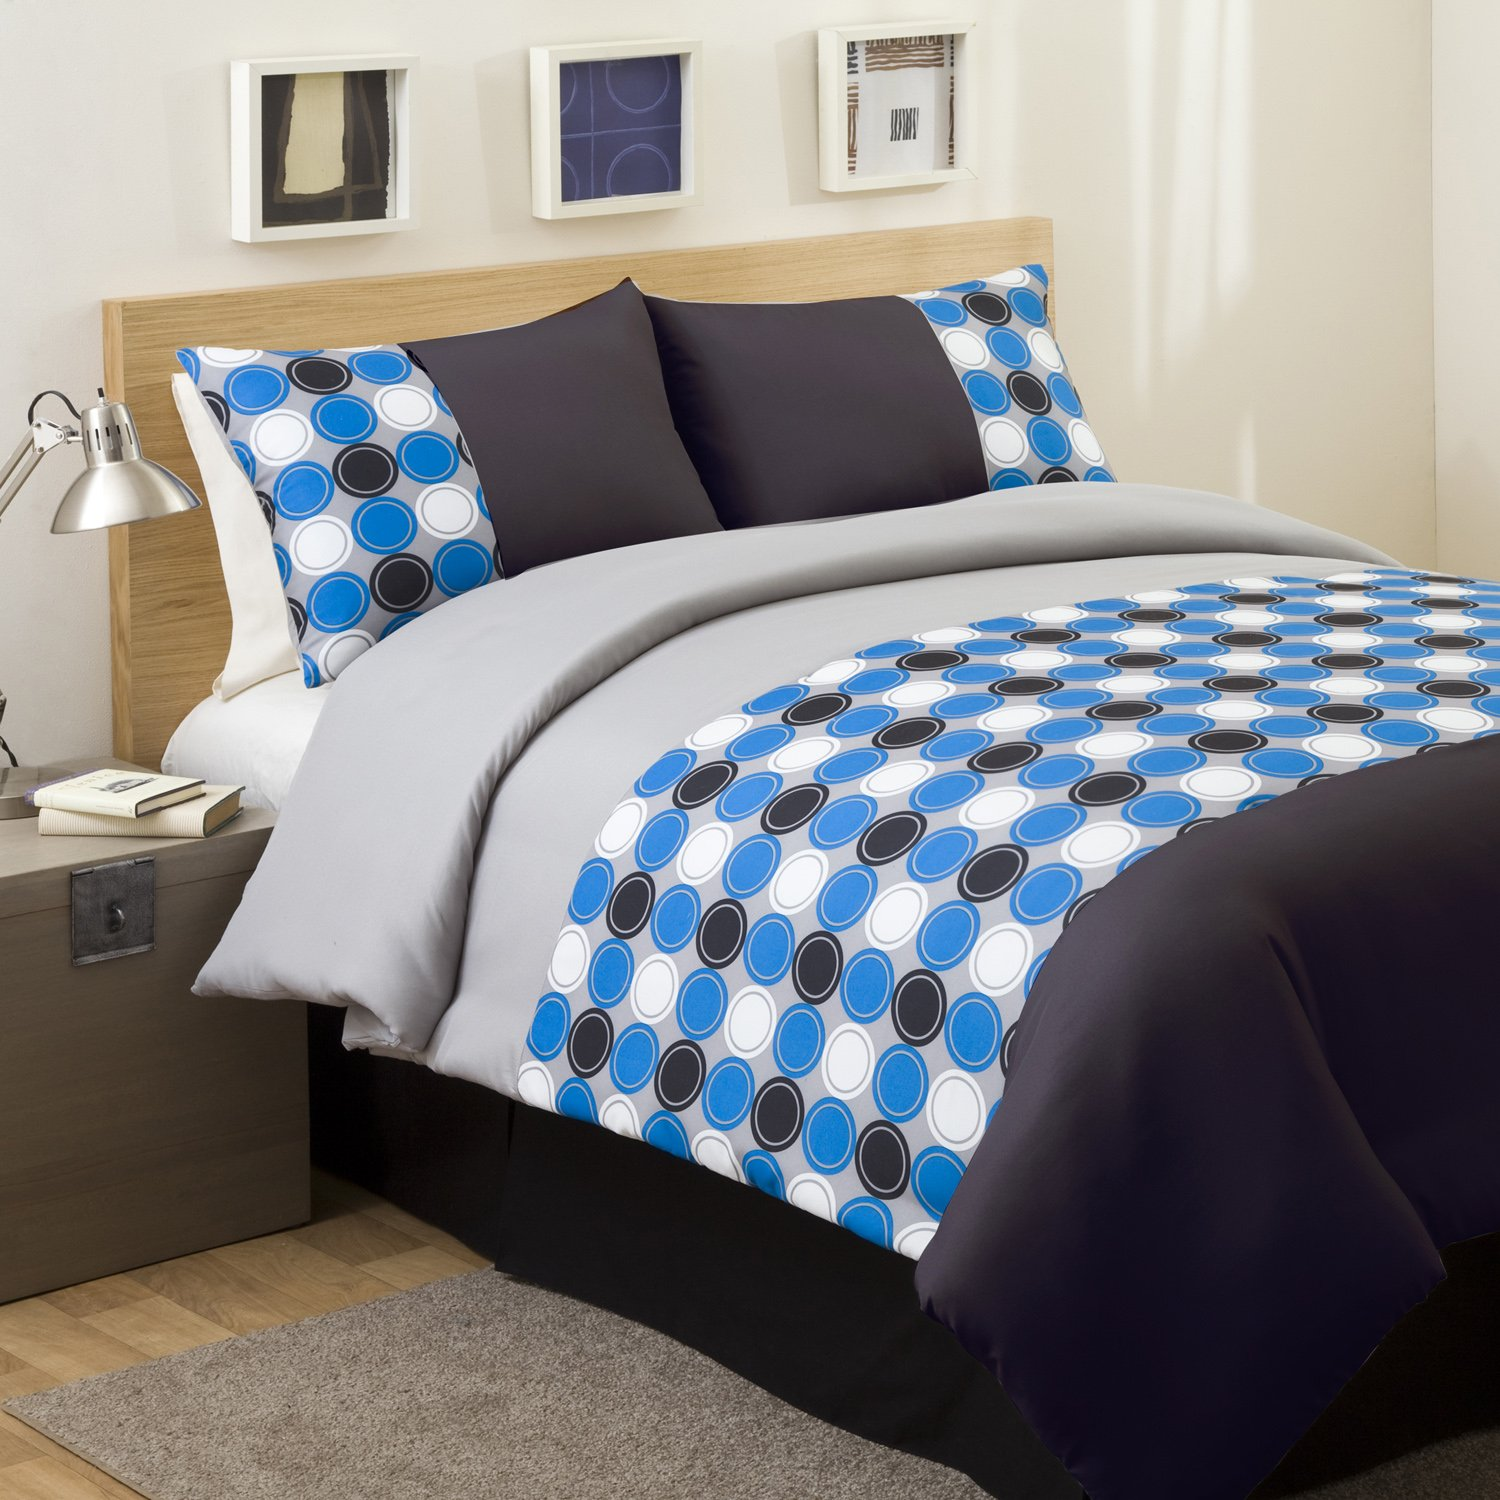 Polka dot bedding set beautiful bedroom for Beautiful bedroom comforter sets